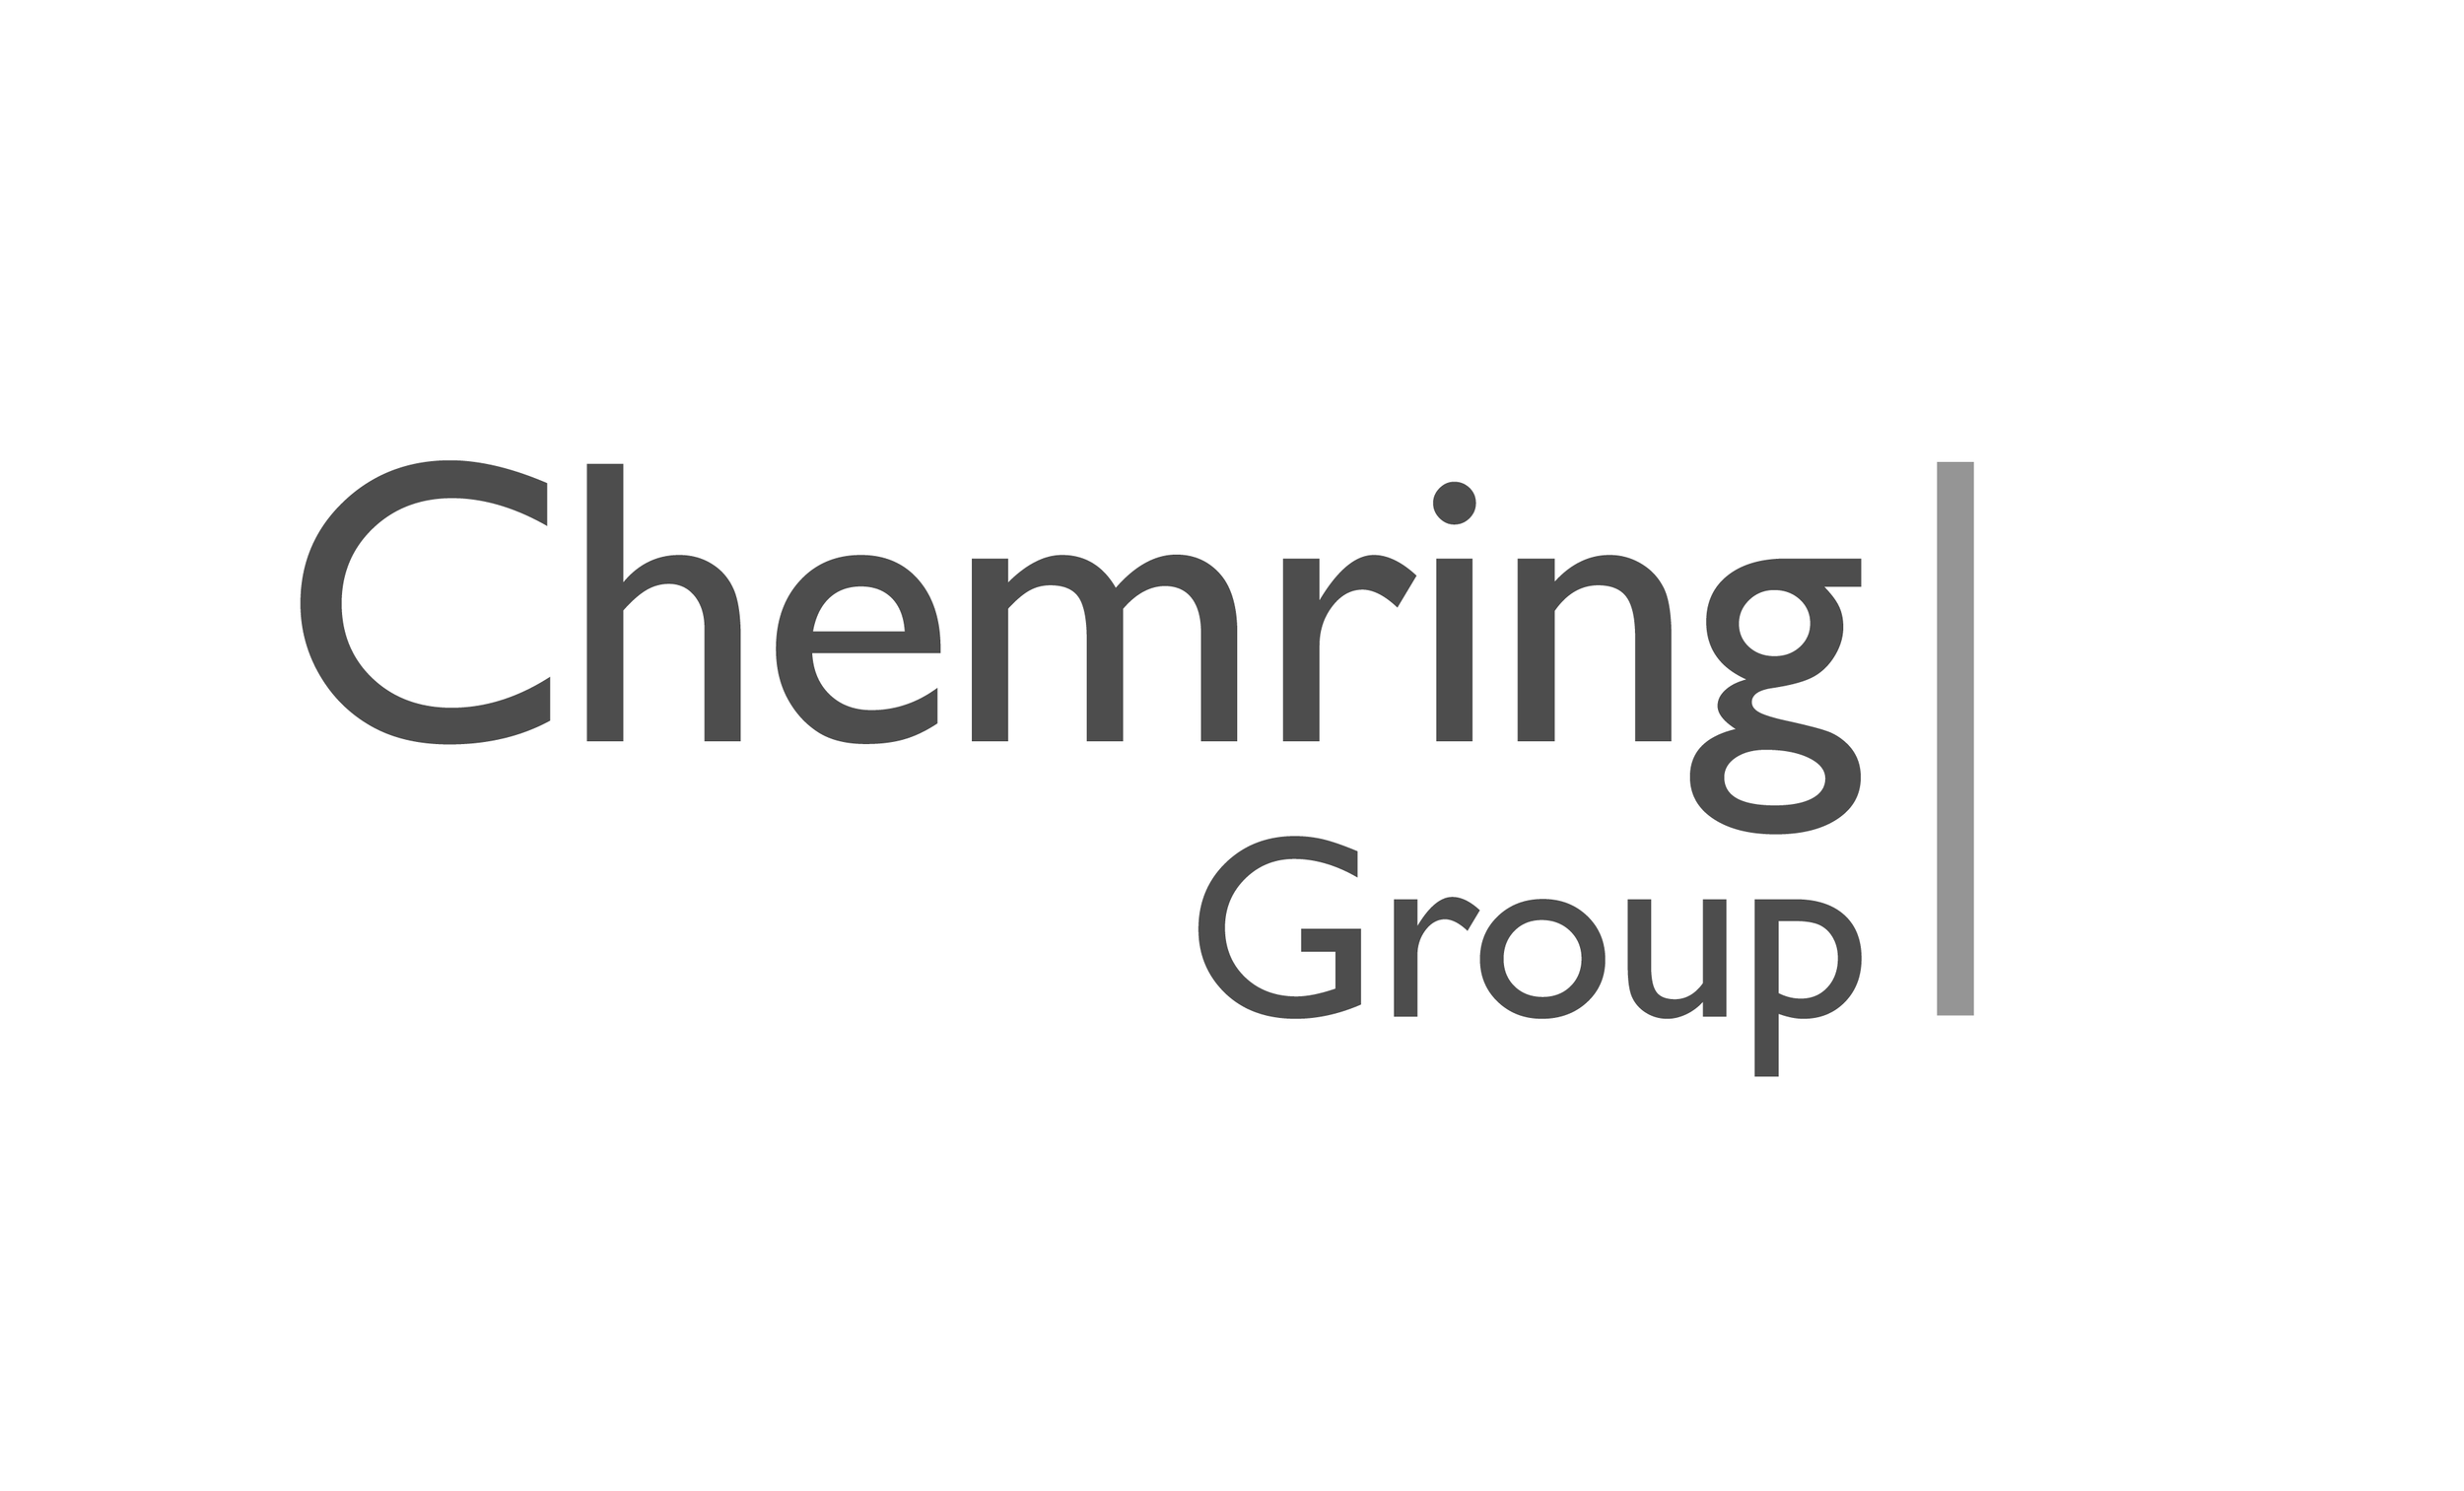 Chemring Group RGB.png